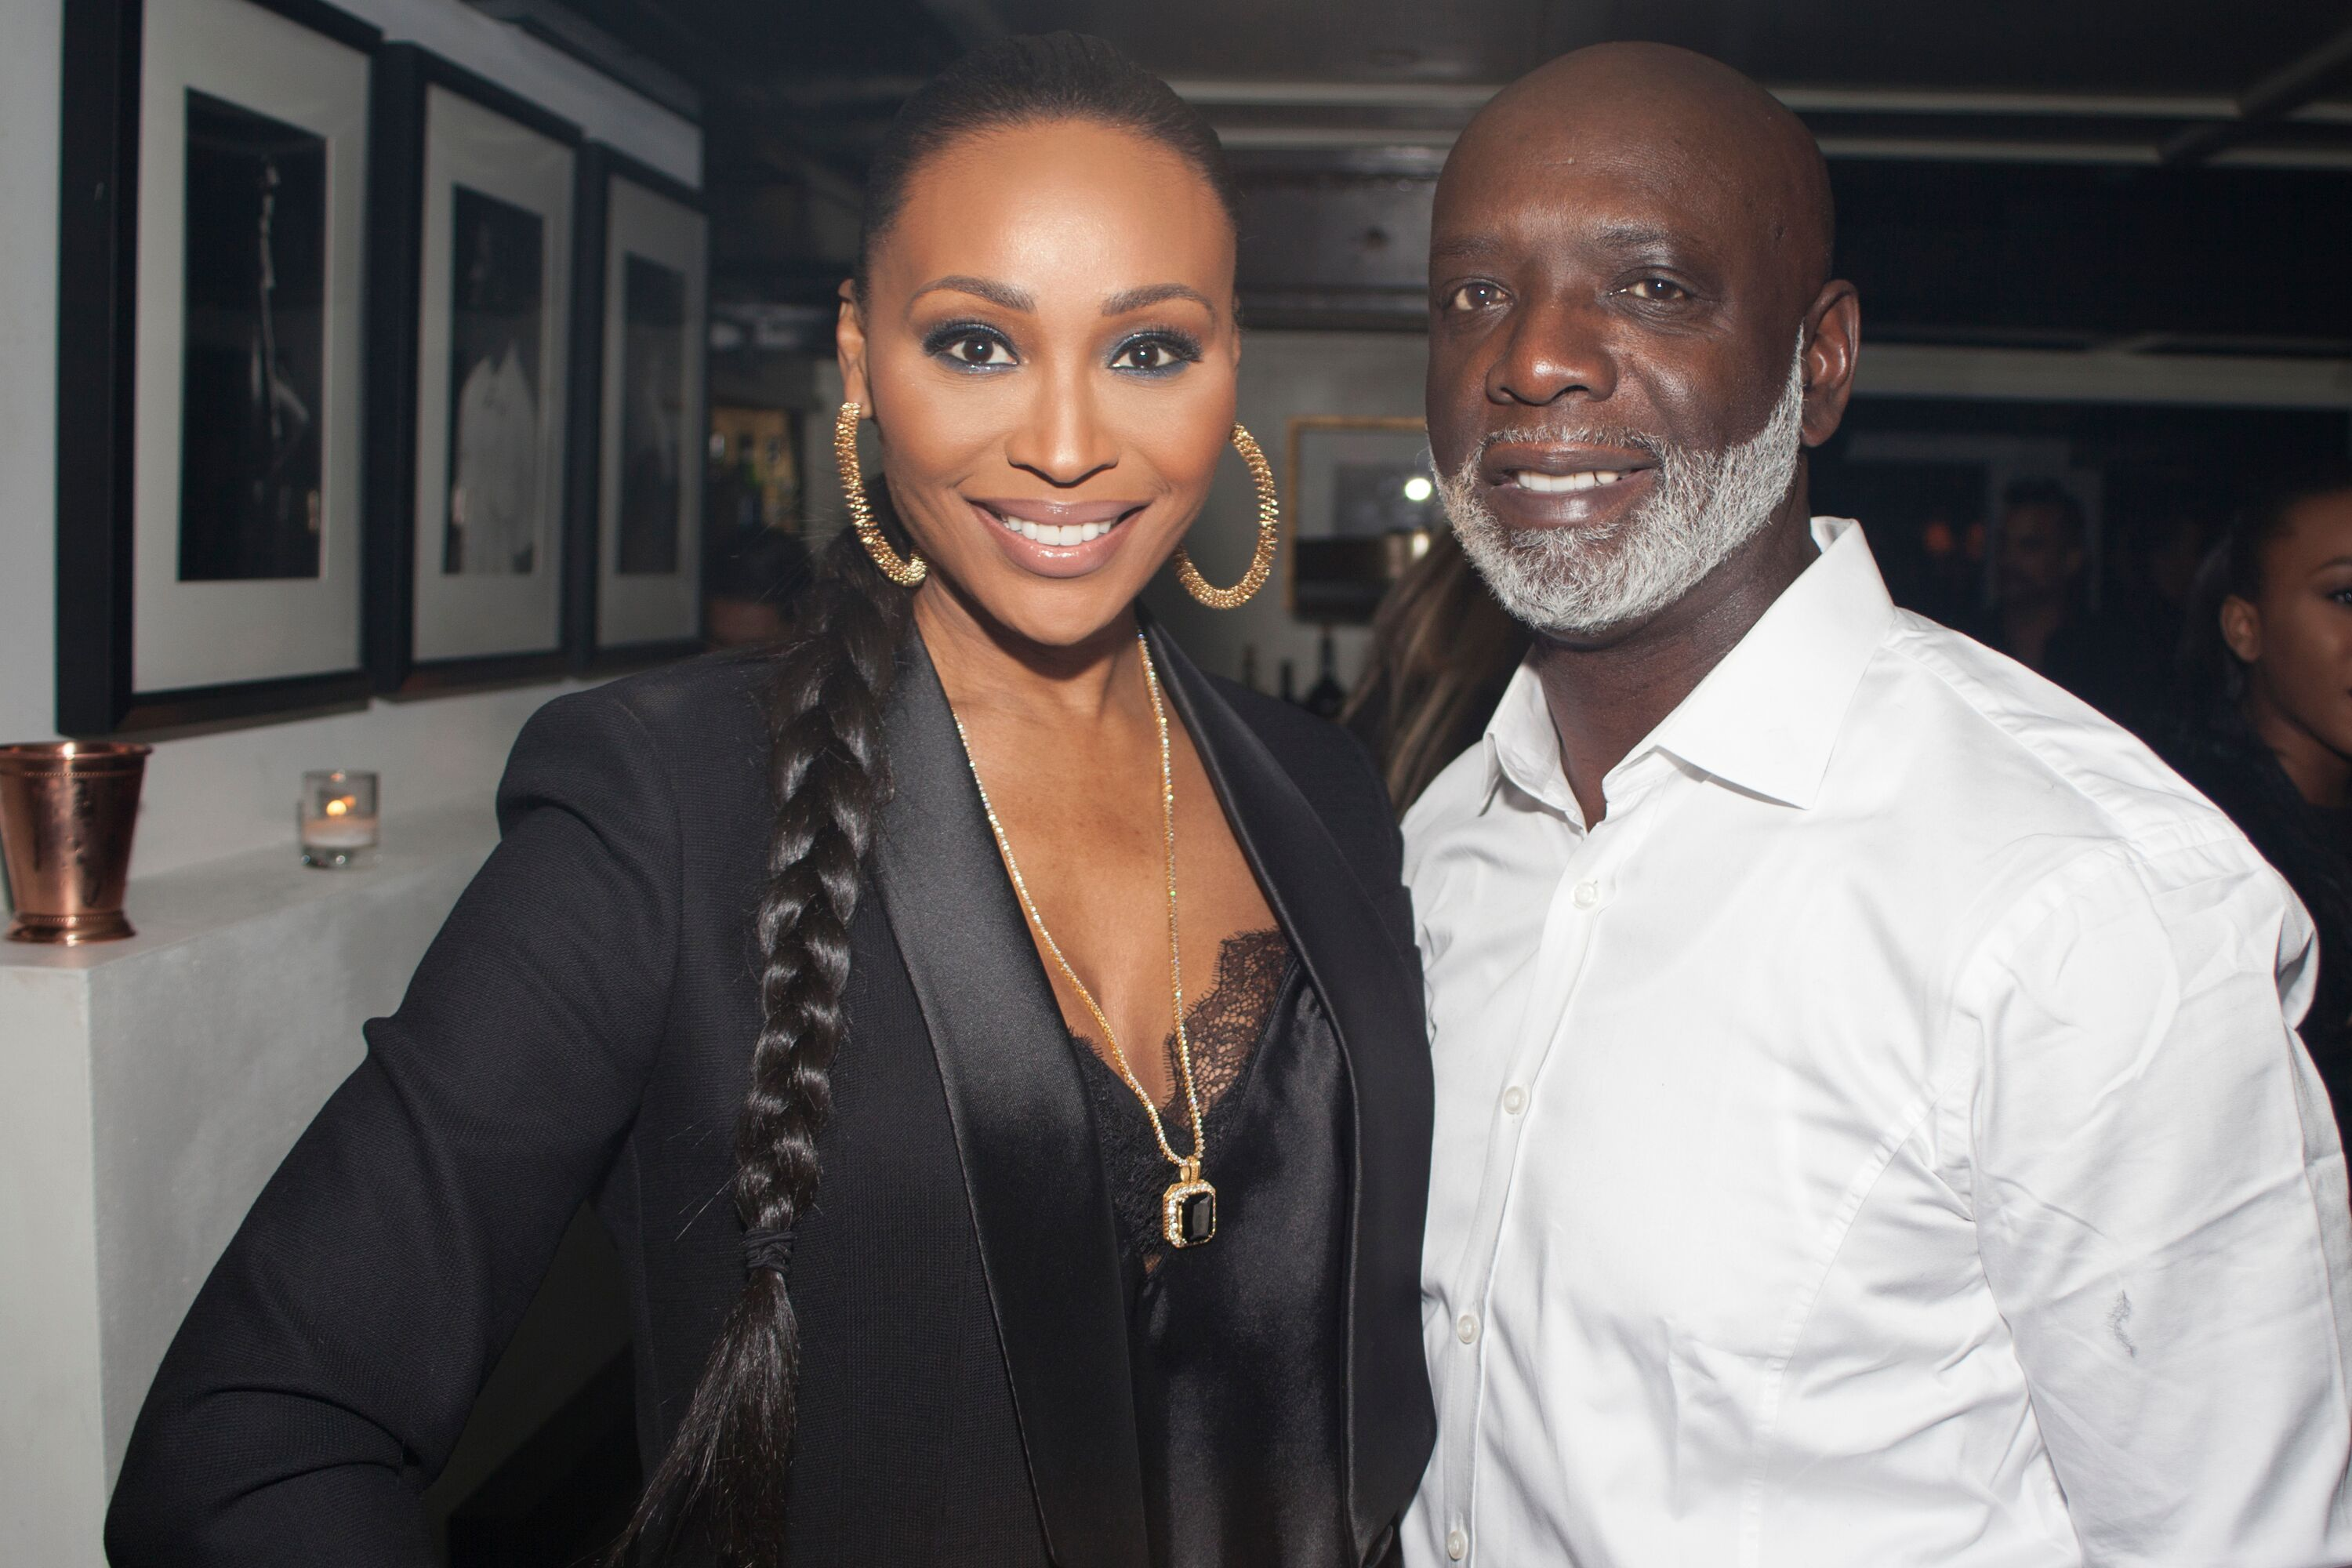 RHOA star Cynthia Bailey and ex-husband Peter Thomas/ Source: Getty Images